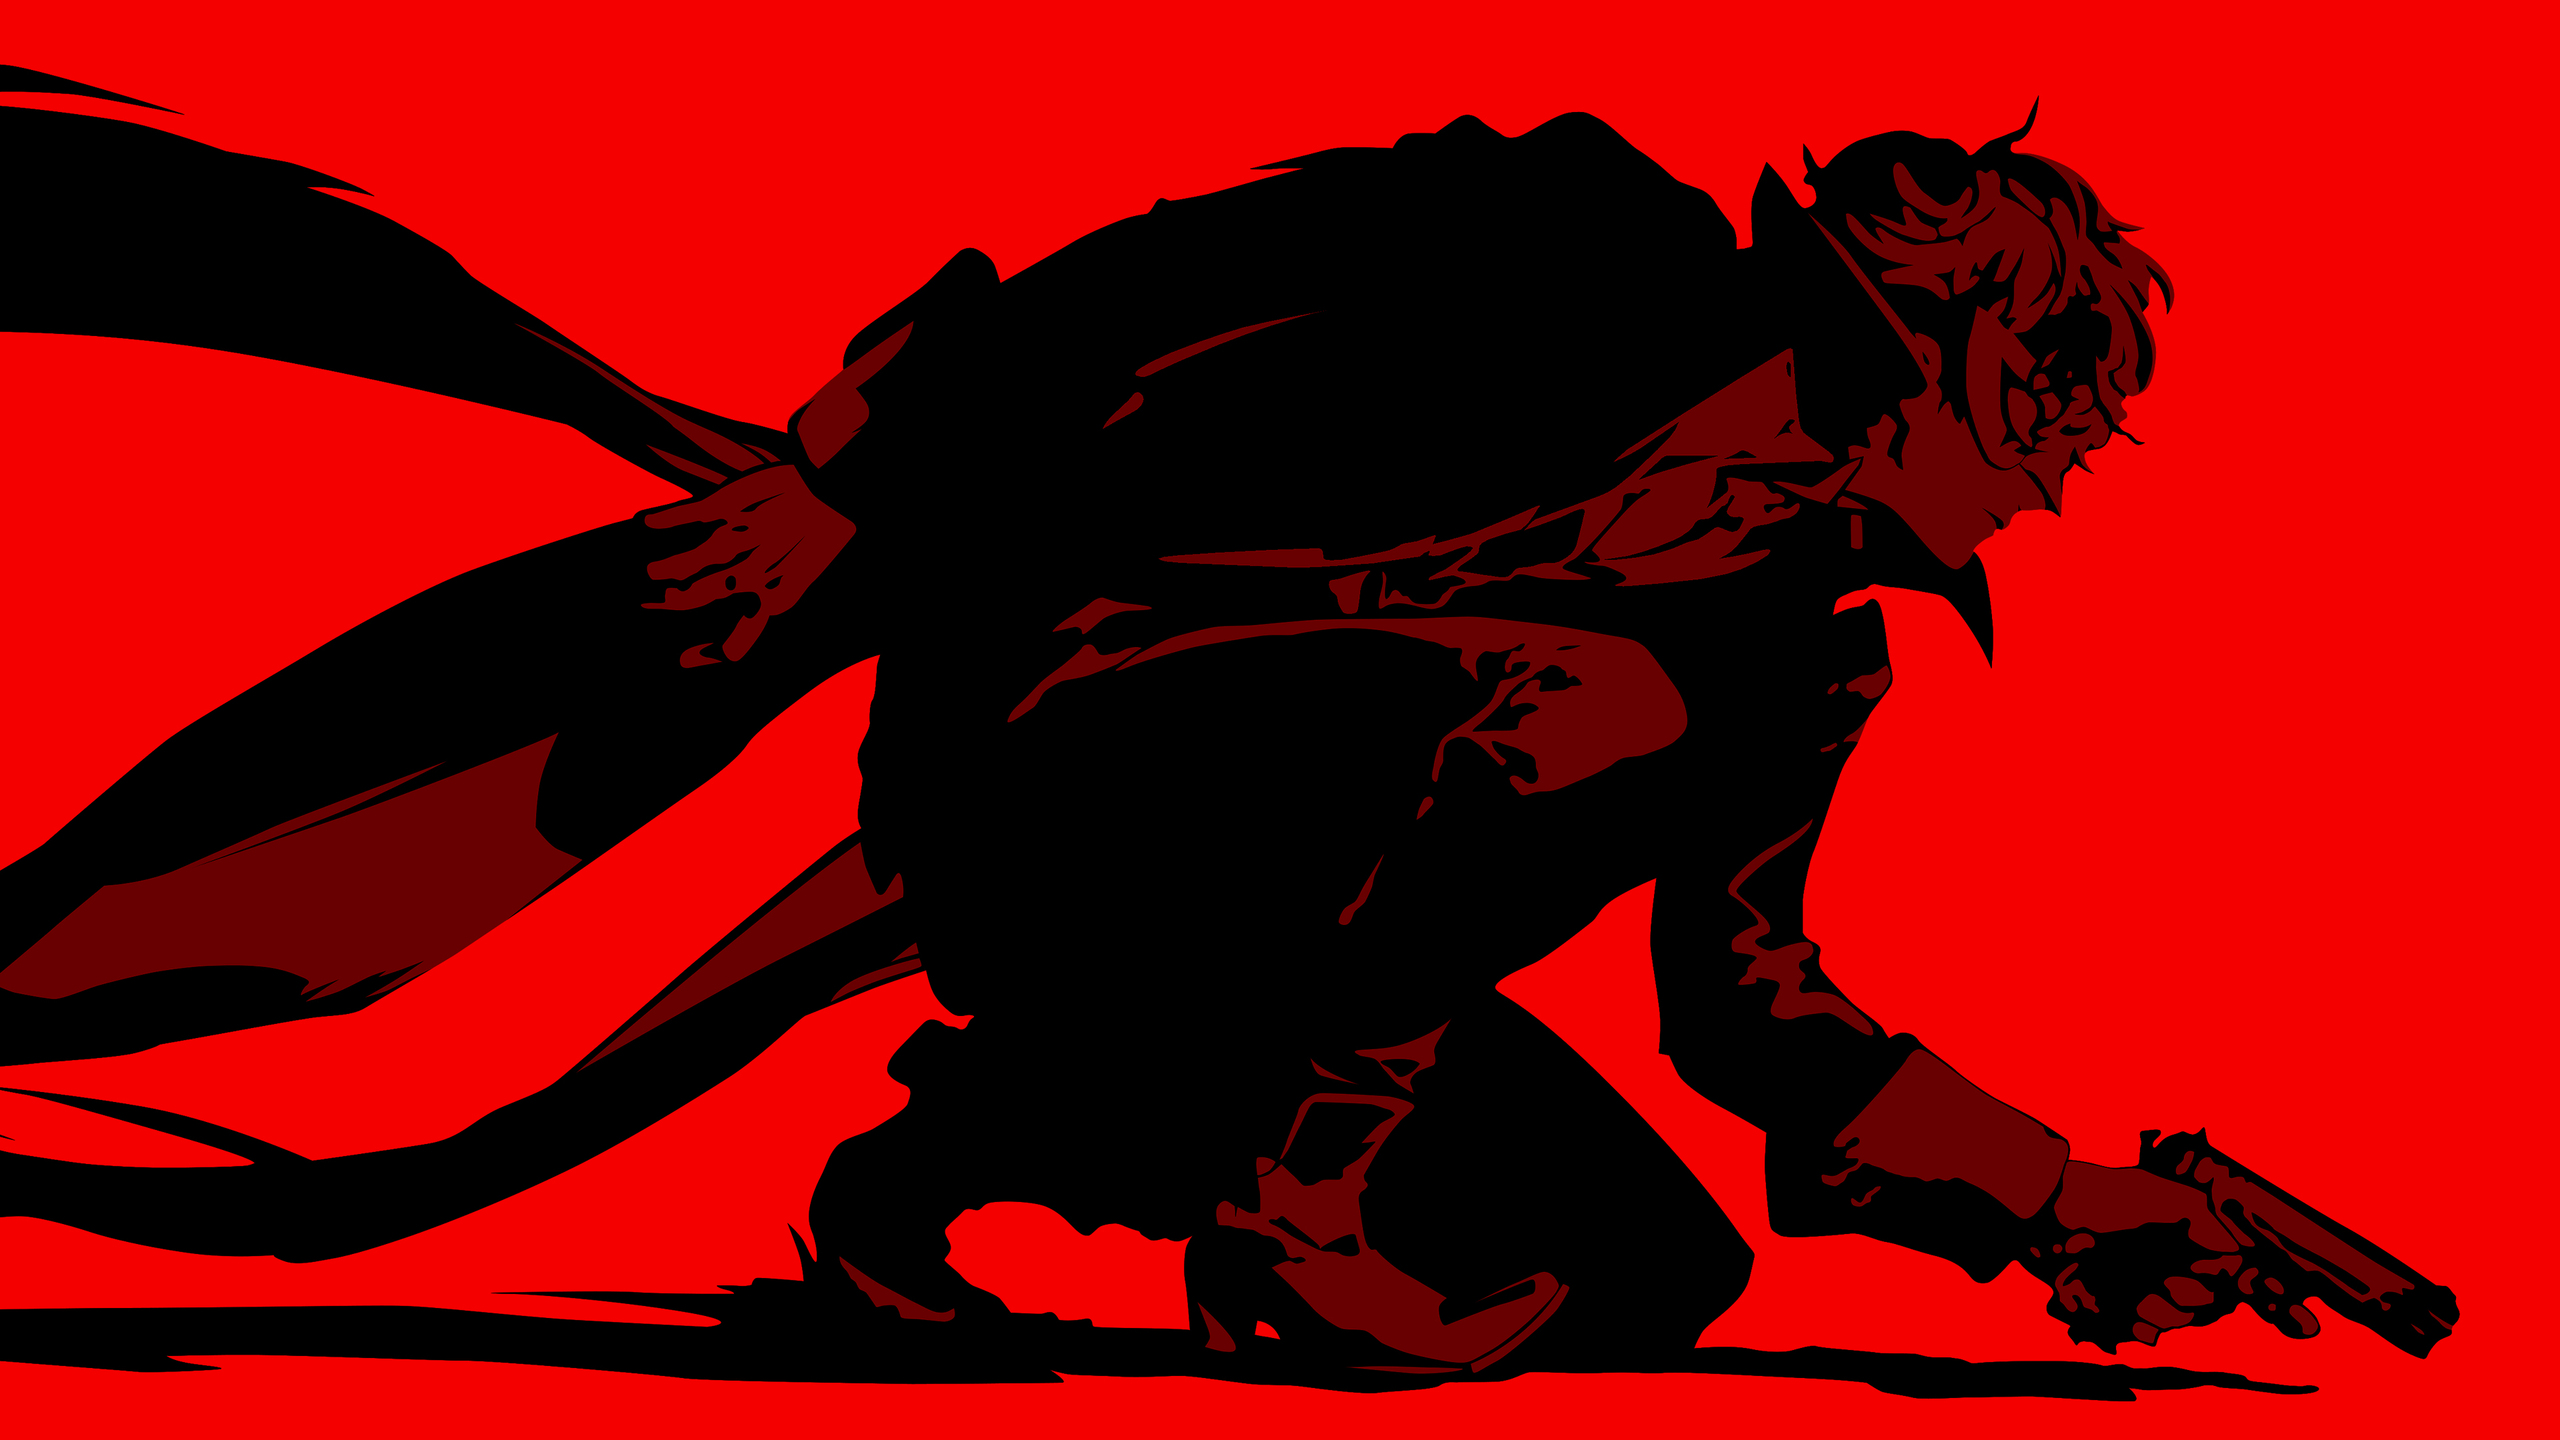 2560x1440 Persona 5 4k 1440p Resolution Hd 4k Wallpapers Images Backgrounds Photos And Pictures